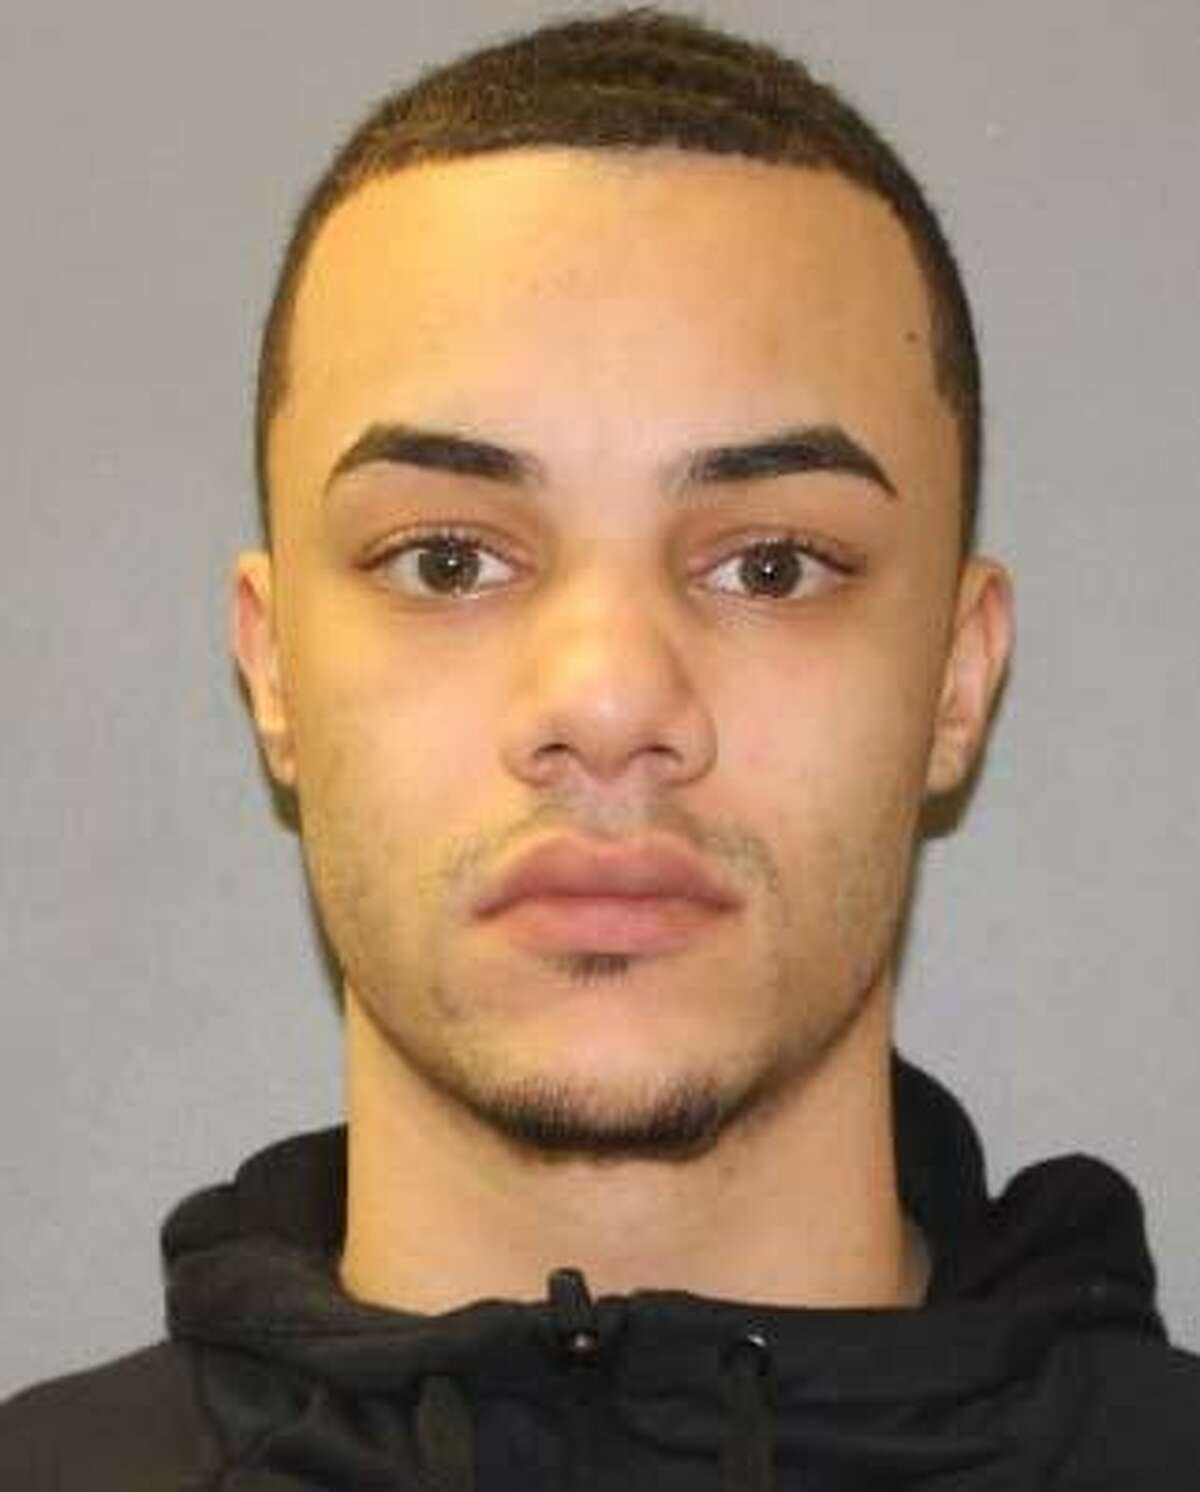 An ex-WB Mason worker is accused of twice breaking into the company's Hamden building on Dec. 1 and 2, 2018. Darren Bowman was charged with two counts of third-degree burglary, two counts of second-degree criminal trespass, sixth-degree larceny and using a motor vehicle without the owner's permission.